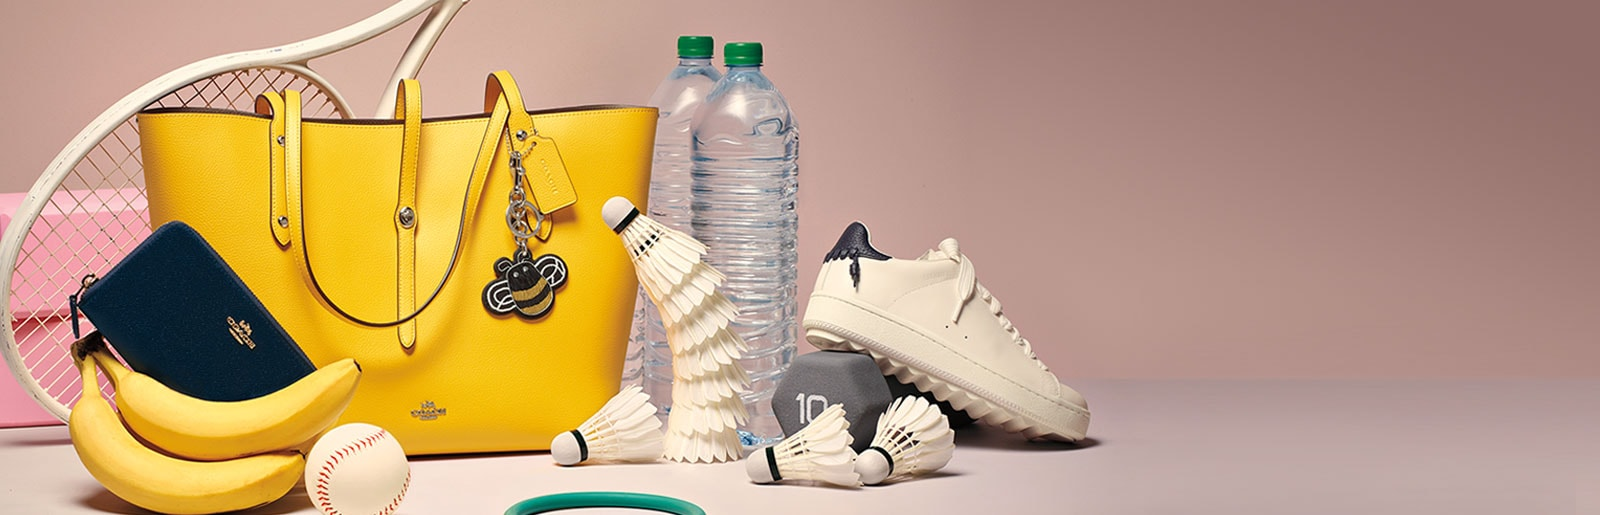 Shop gifts for The Sporty Mom